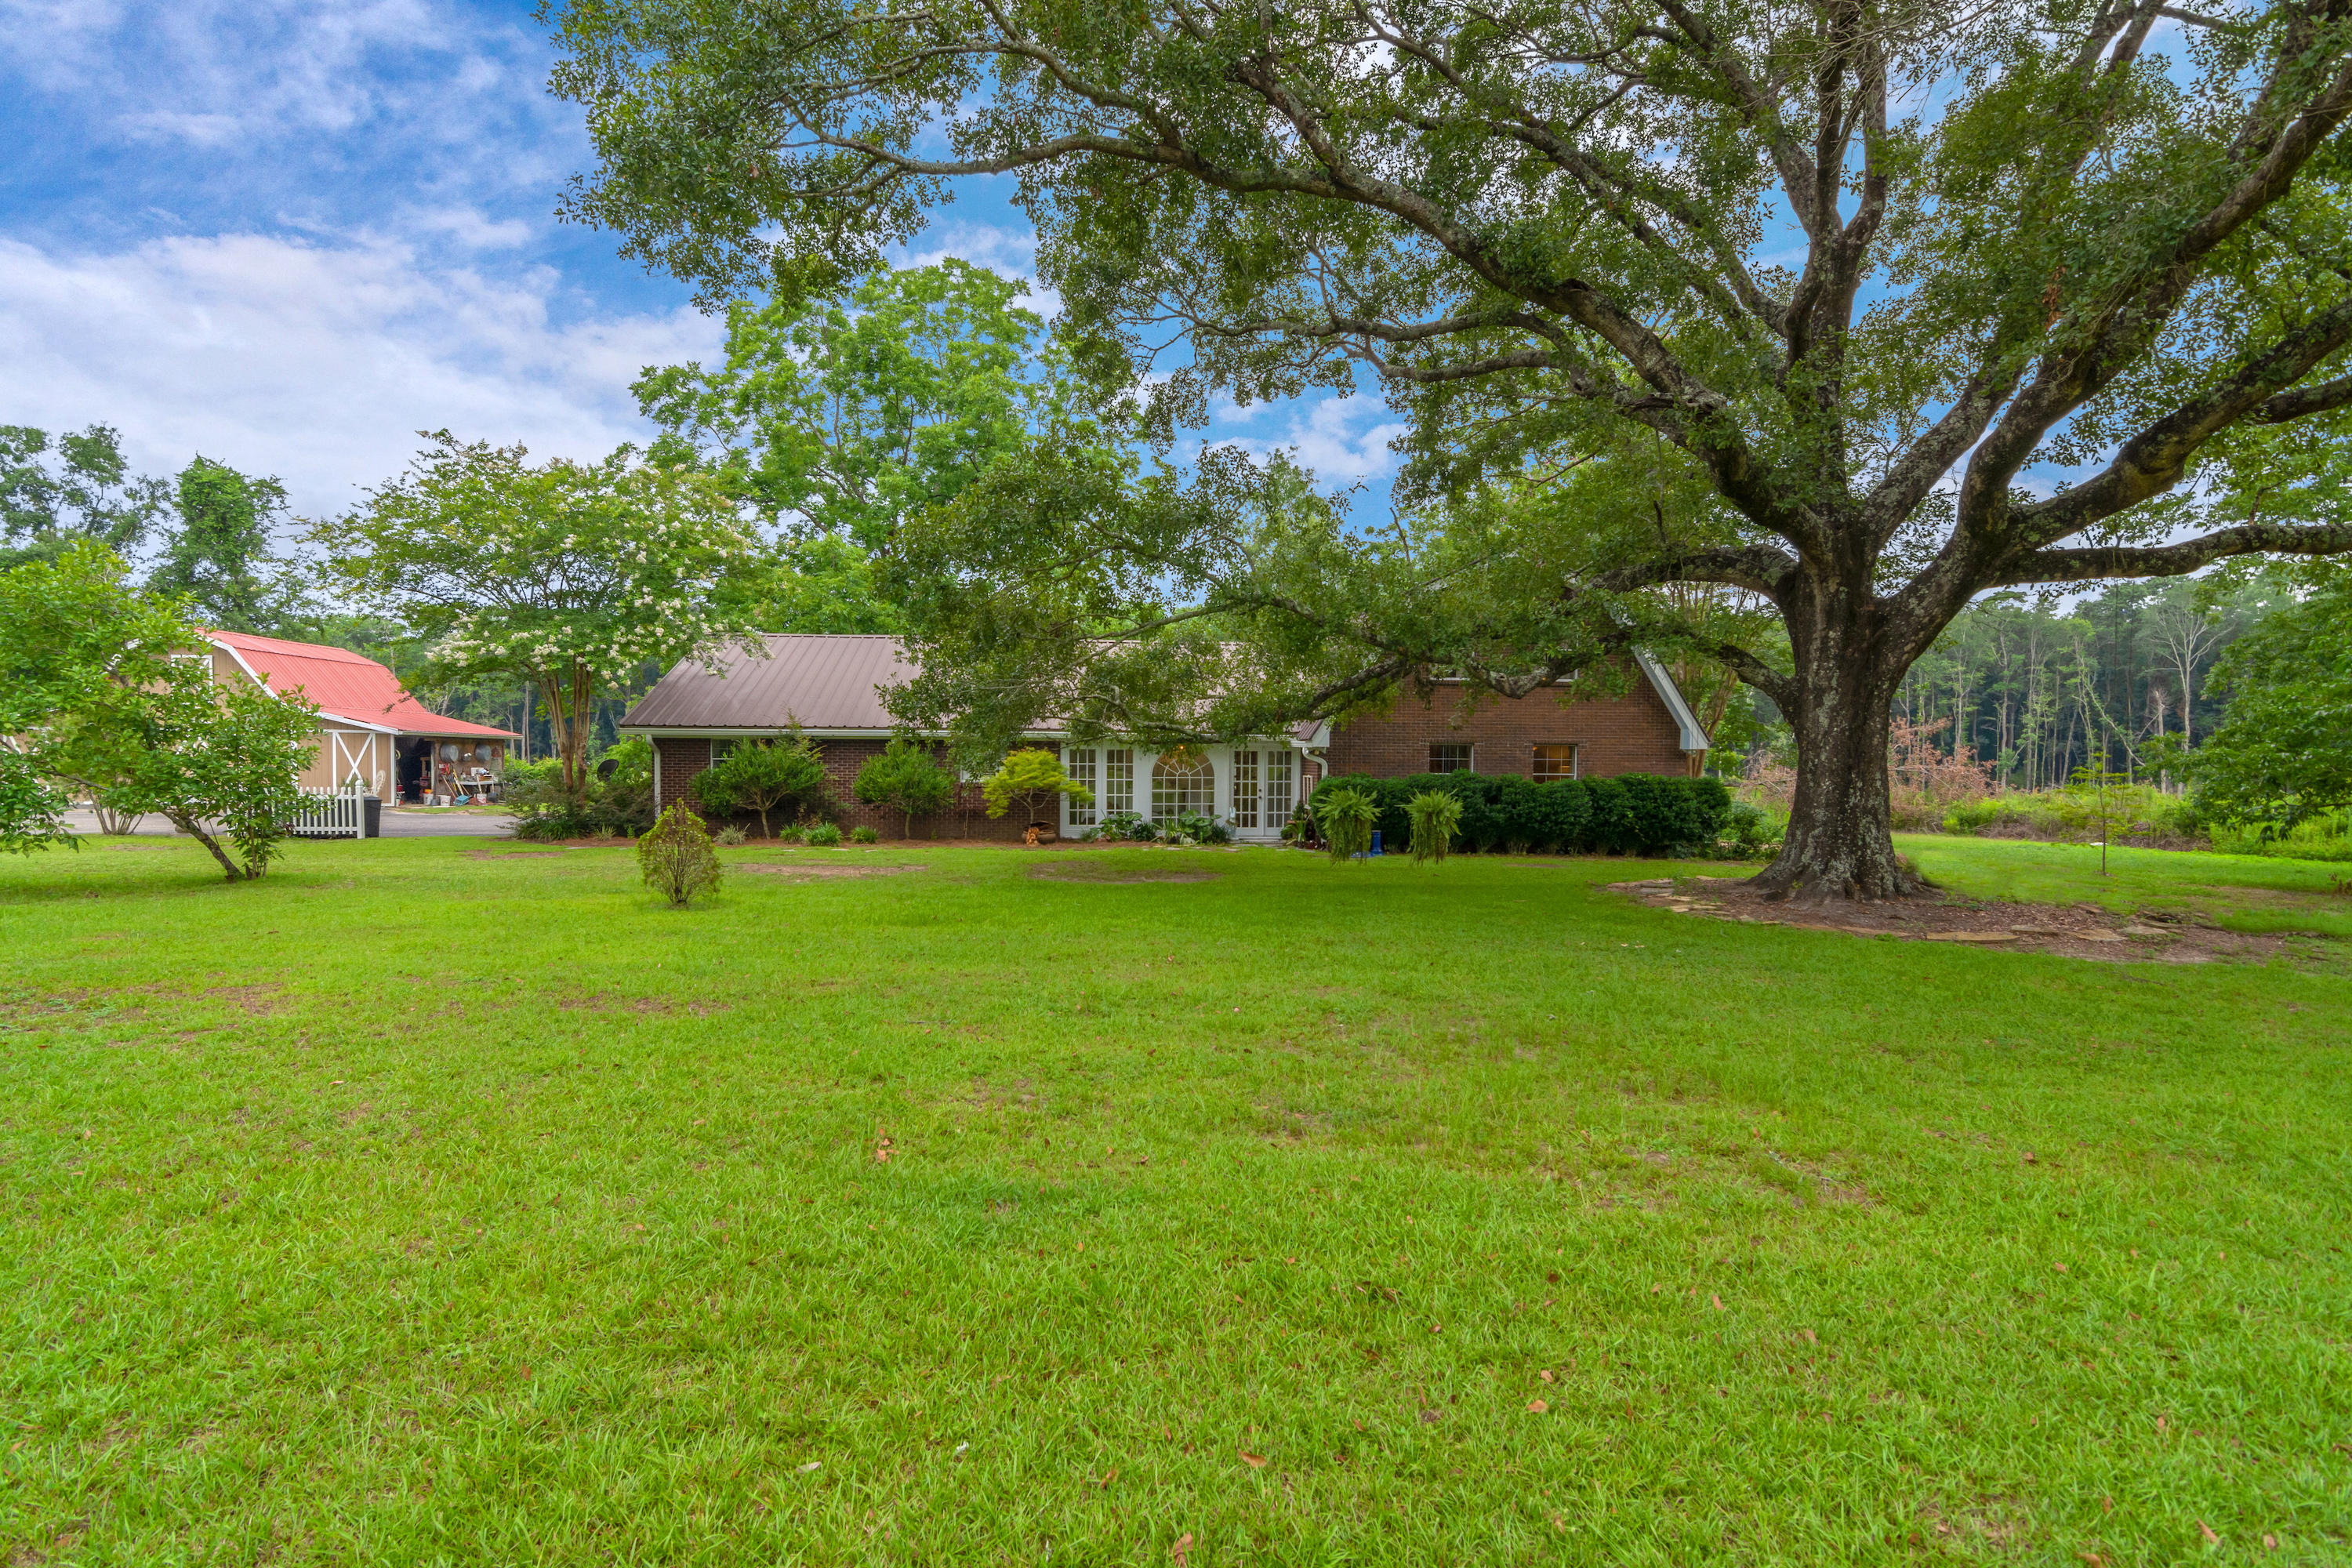 Photo of home for sale at 8085 St Hwy 83 N, Defuniak Springs FL